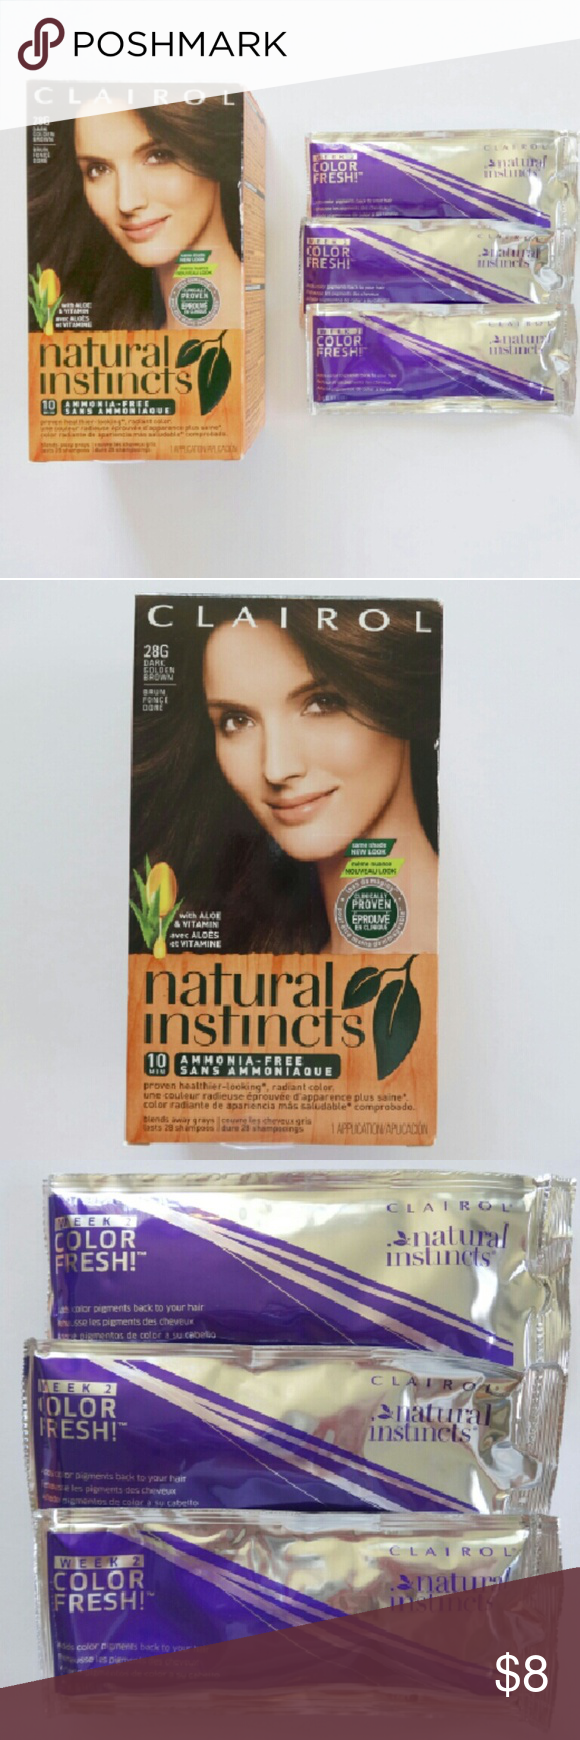 Last Chance Clairol Hair Color 1 Unopened Box Of Clairol Natural Instincts Hai Clairol Natural Instincts Colors Clairol Natural Instincts Clairol Hair Color